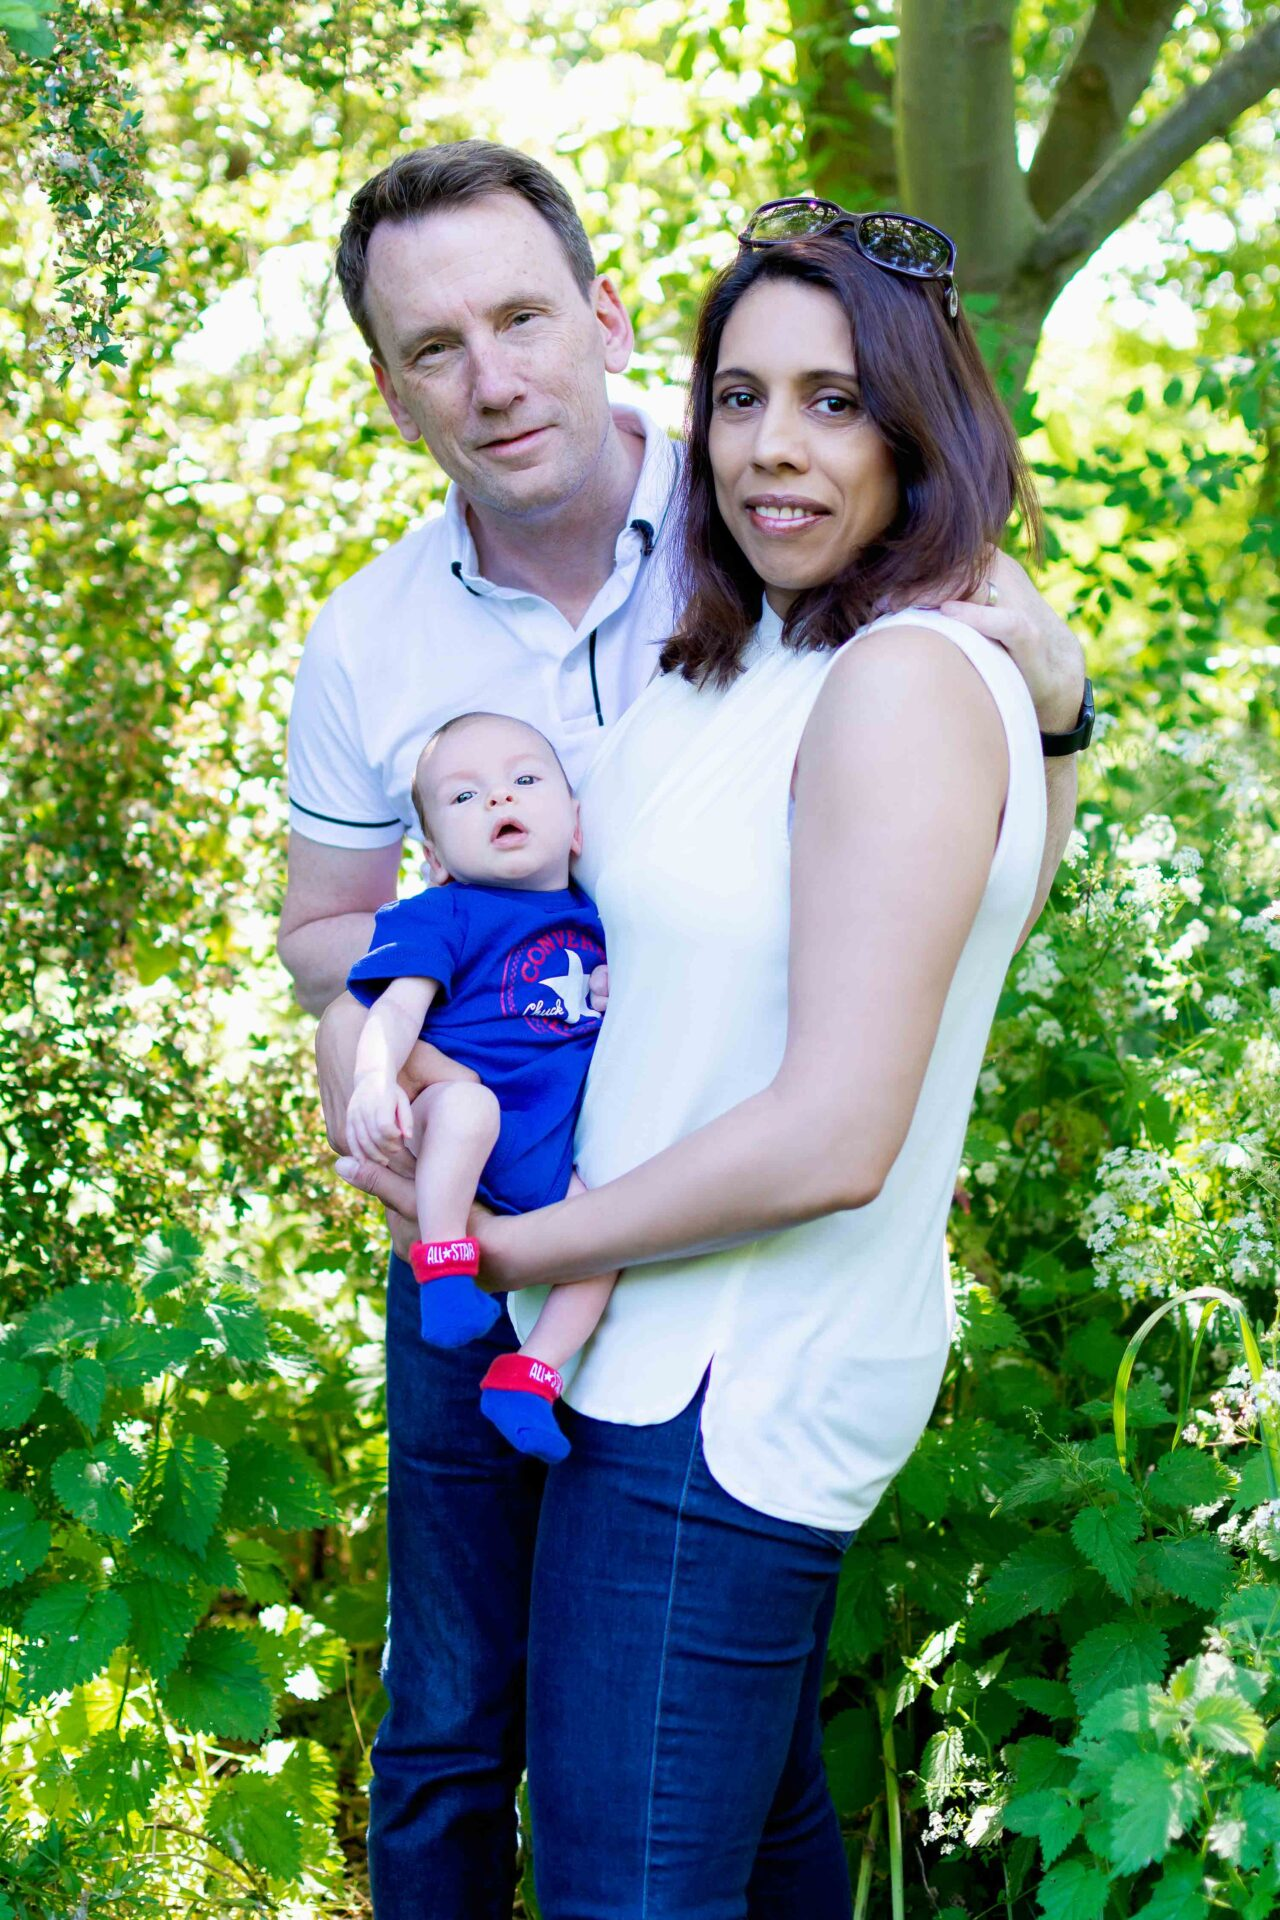 family photography at mudchute farm london